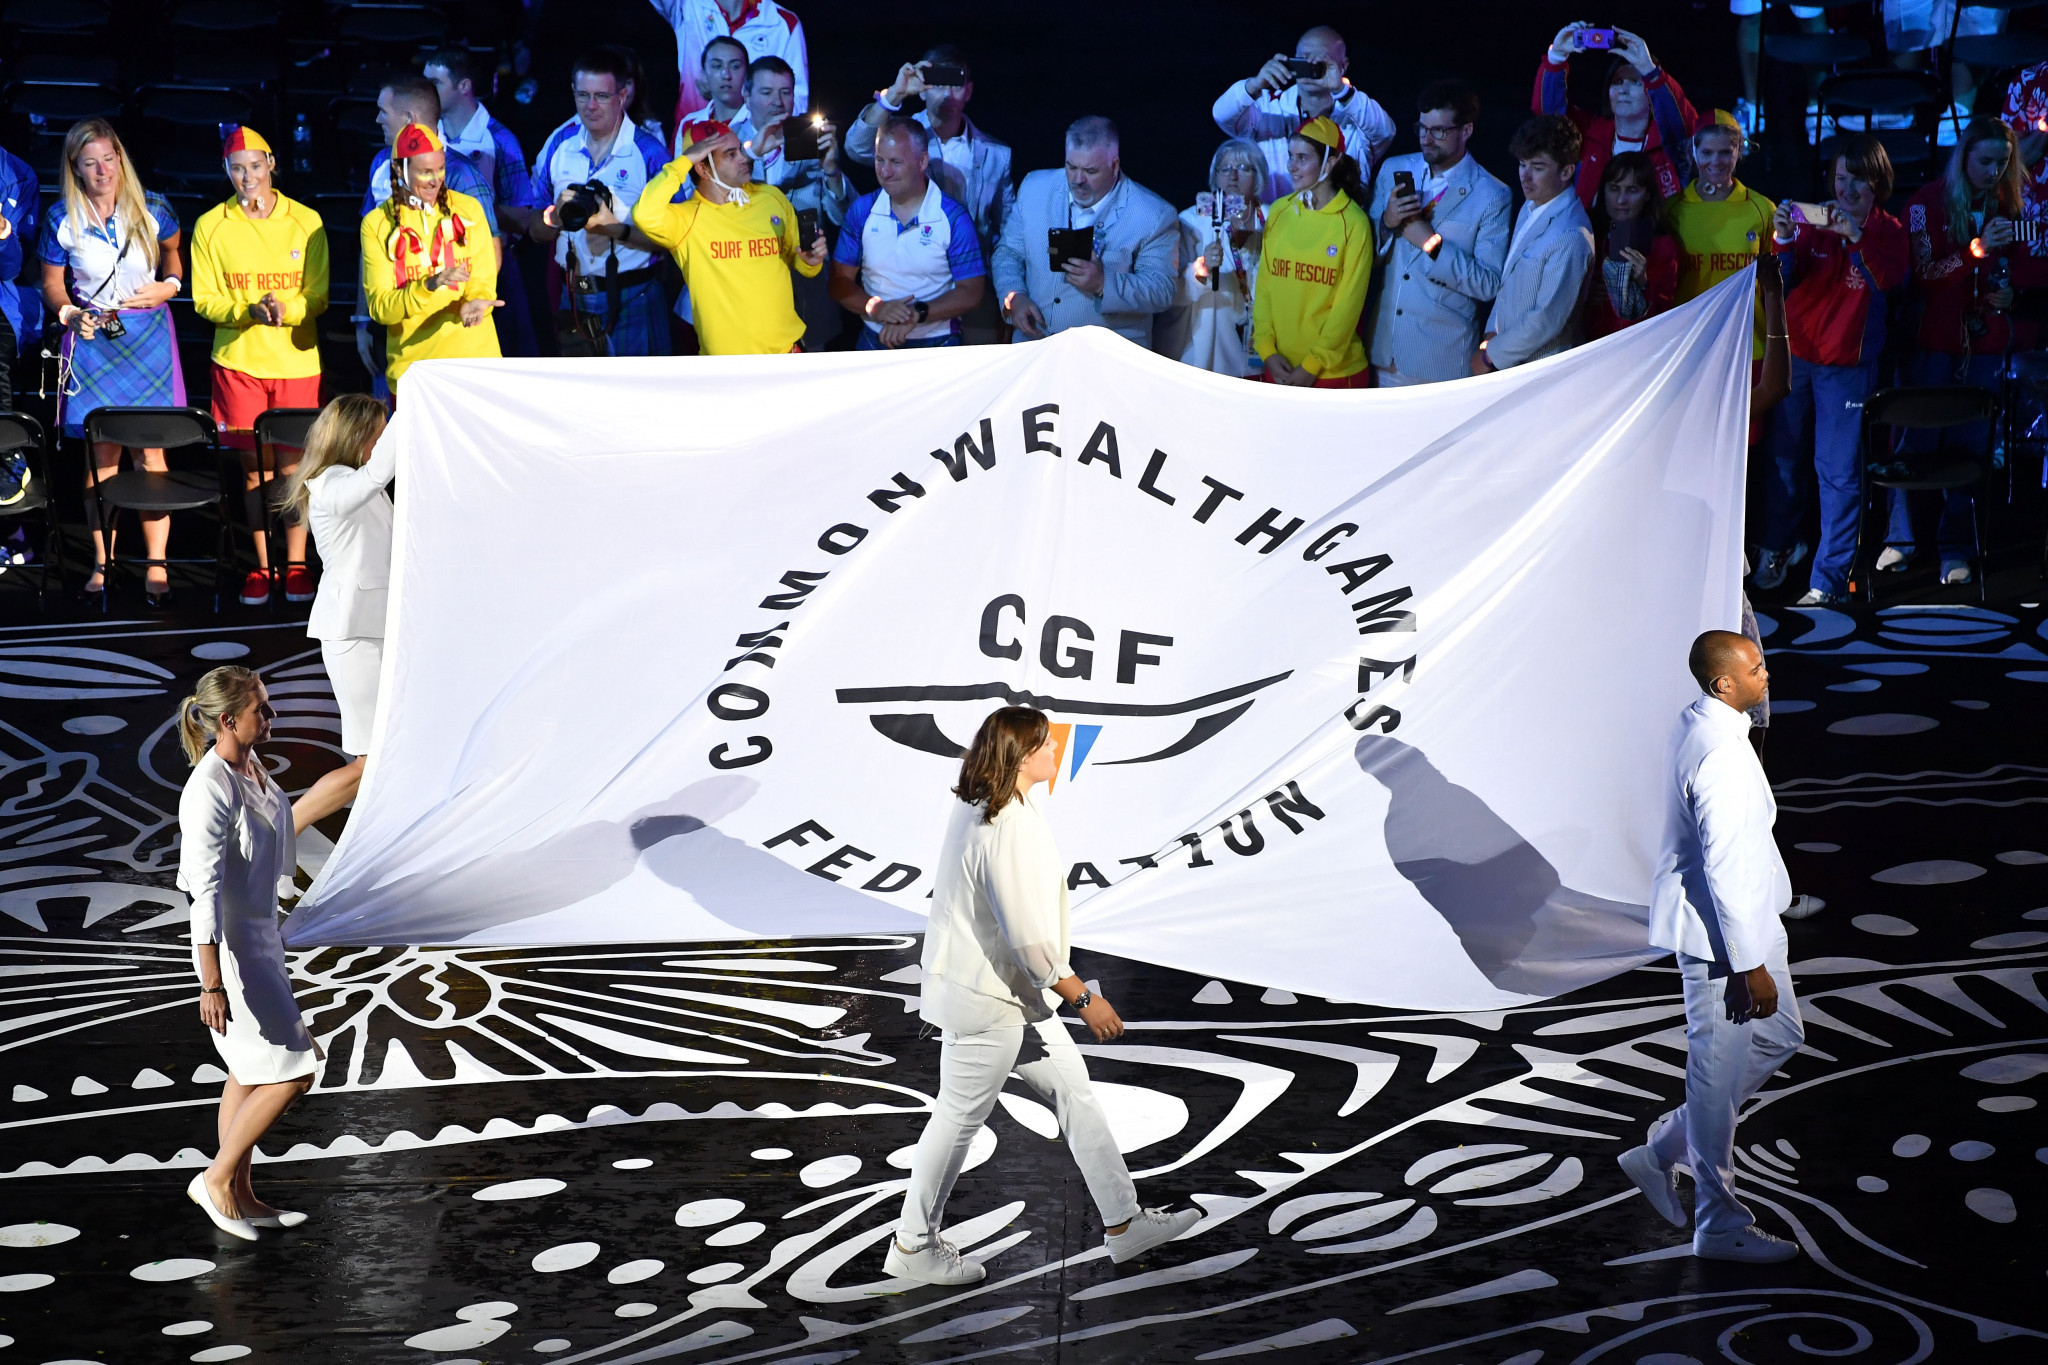 The Commonwealth Games Federation flag is carried into the stadium by Brendan Williams, Natalie Du Toit, Alison Shanks, Nicole Forrester, Colin Gregor and Rhona Toft during the Opening Ceremony for Gold Coast 2018 ©Getty Images